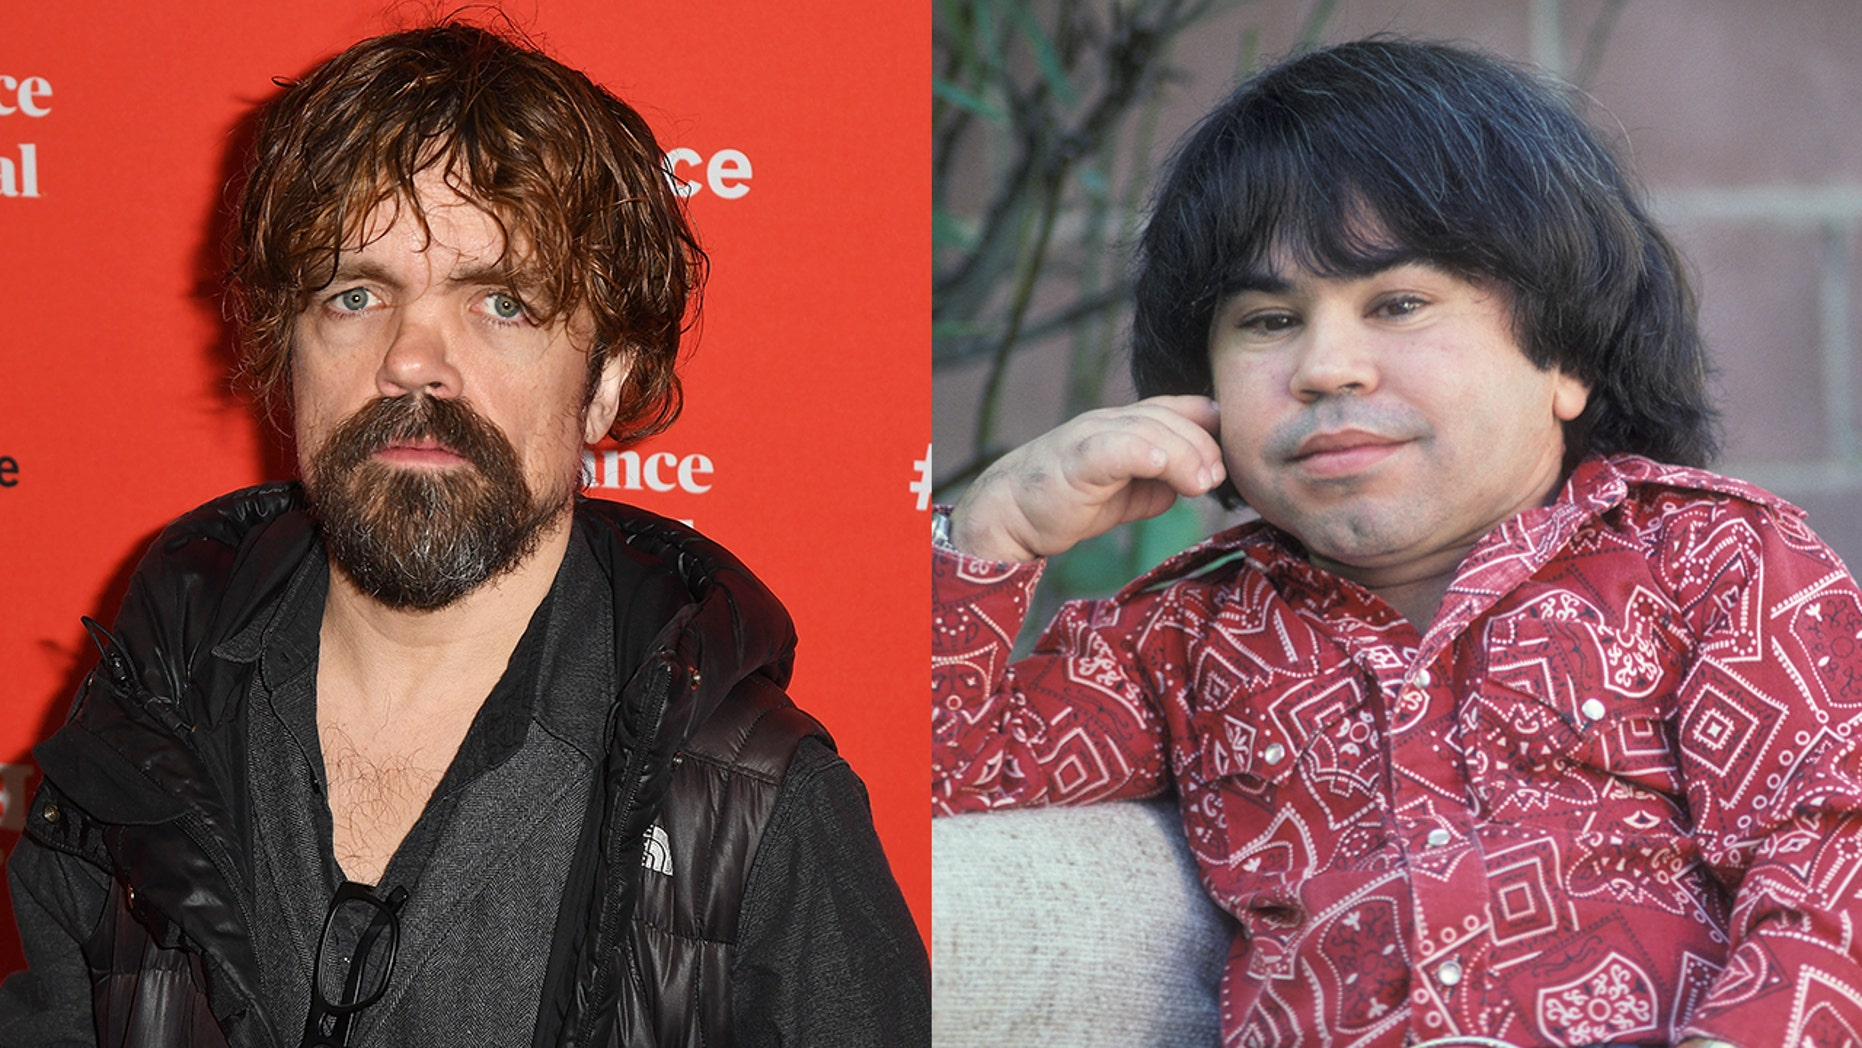 Peter Dinklage responded to whitewashing accusations about French actor Hervé Villechaize.